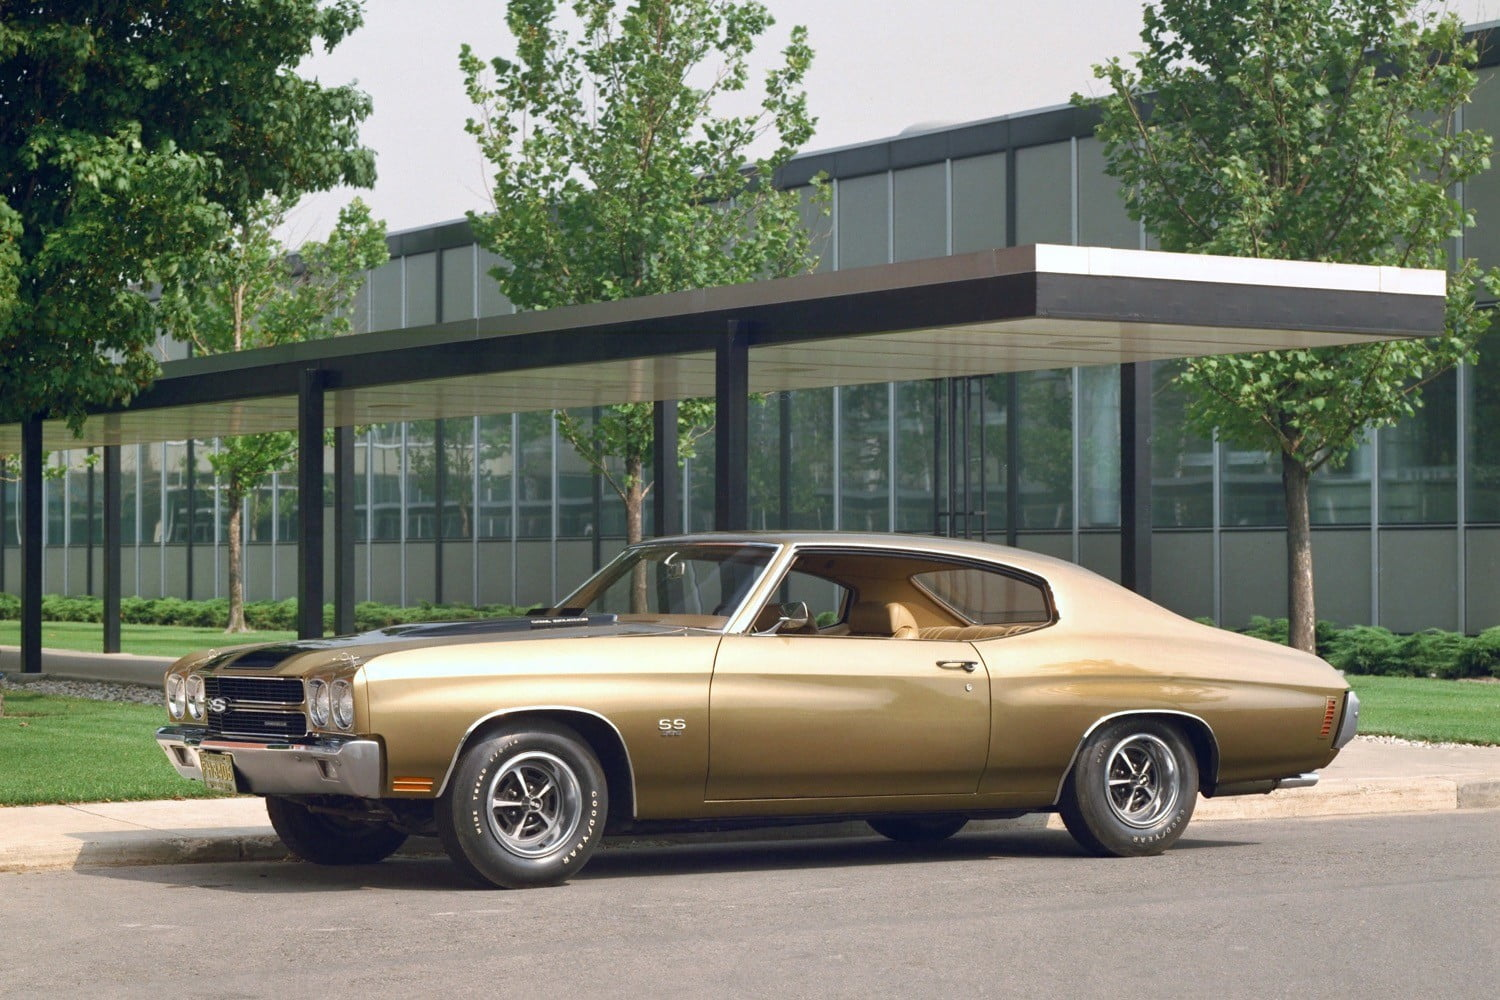 The Best American Muscle Cars